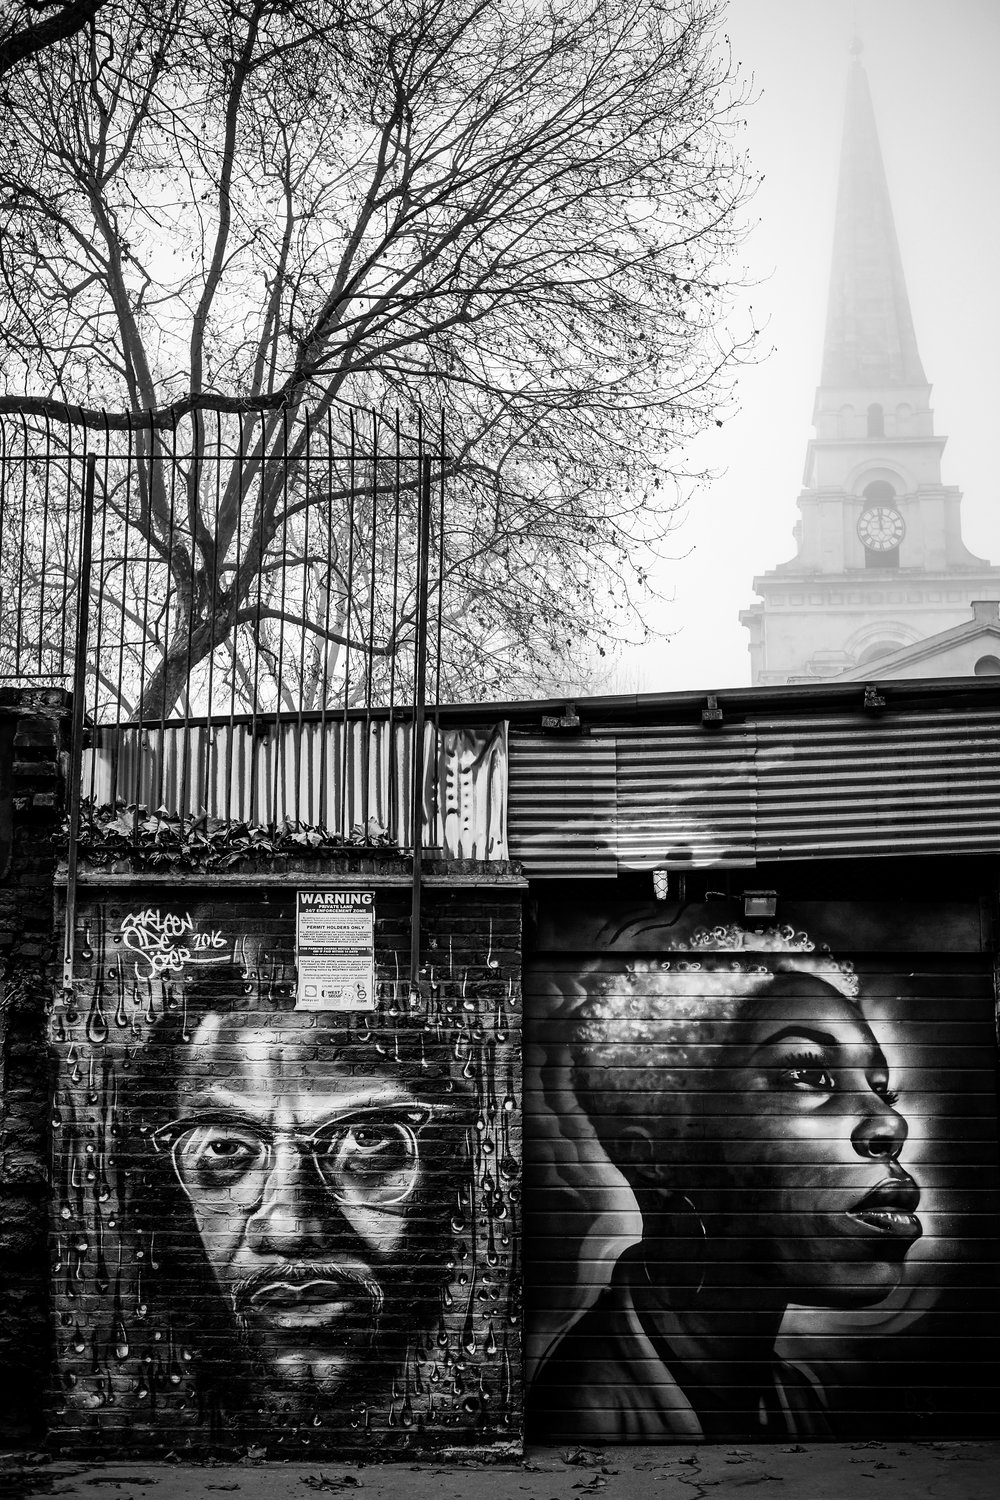 Murals just off Brick Lane